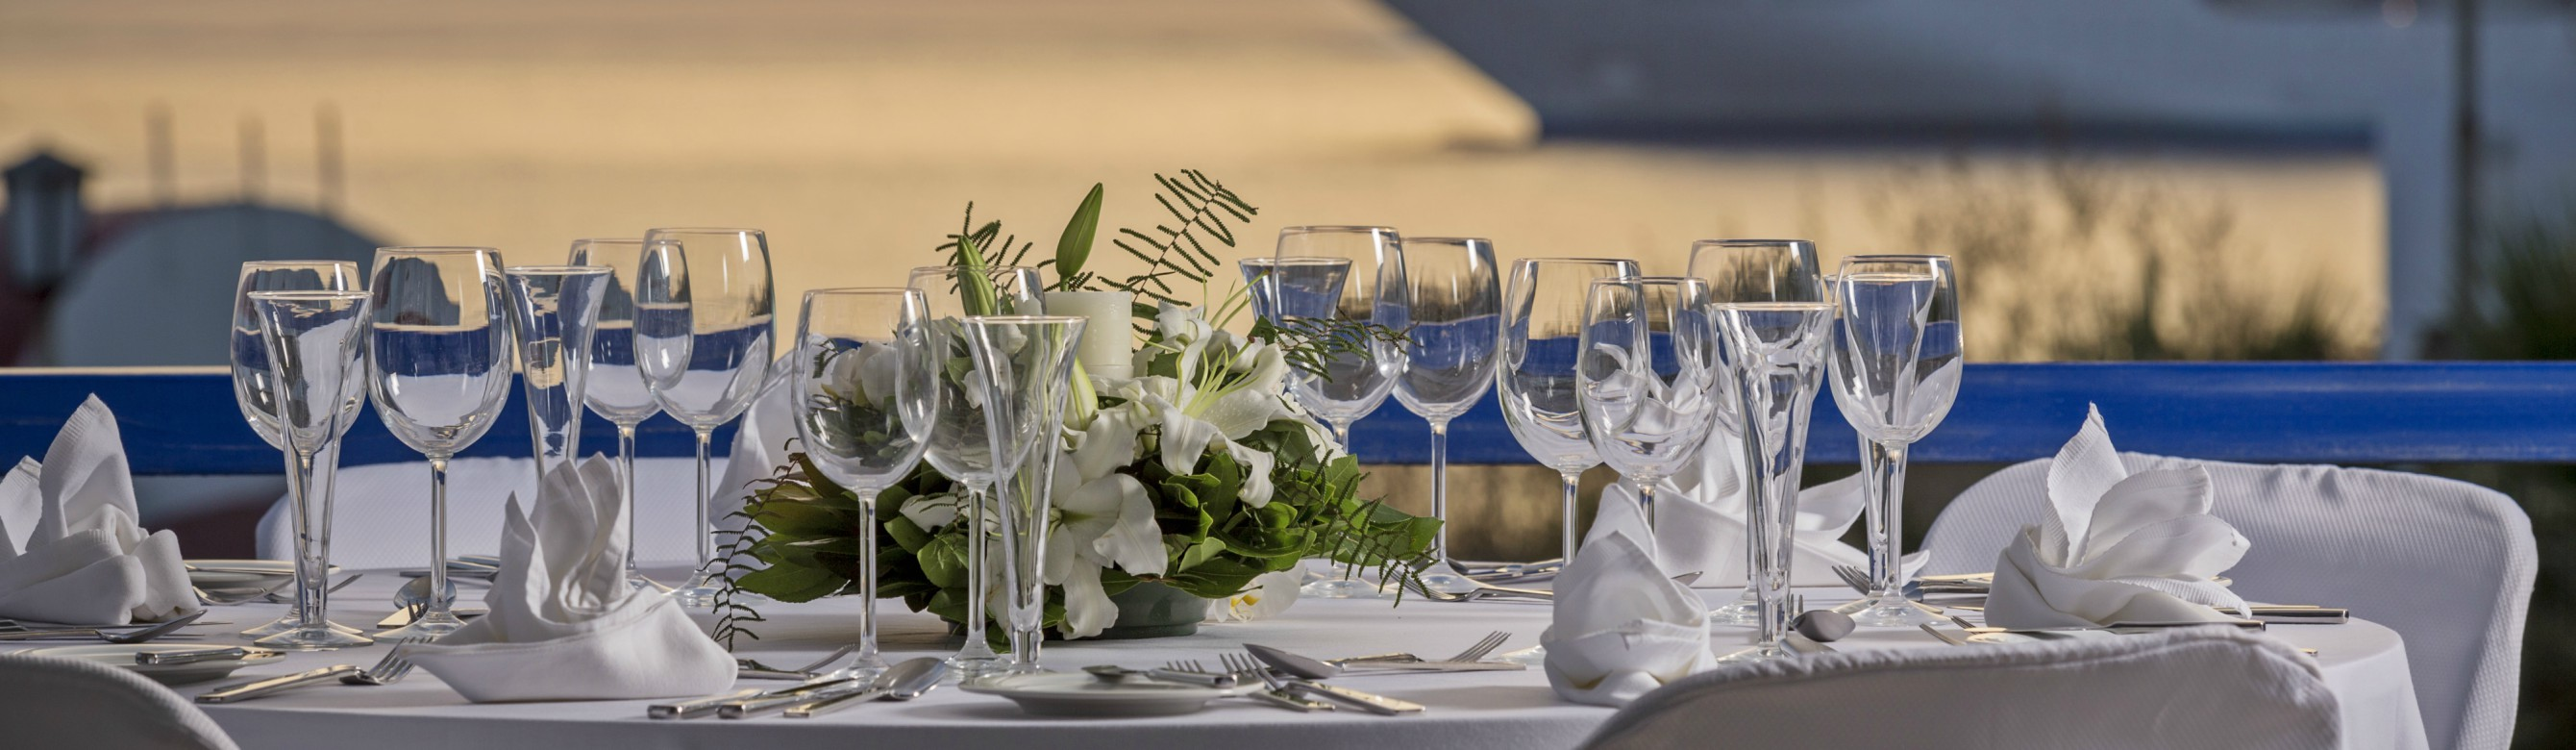 _ Mykonos_Theoxenia_-_Wedding_dinner.jpg